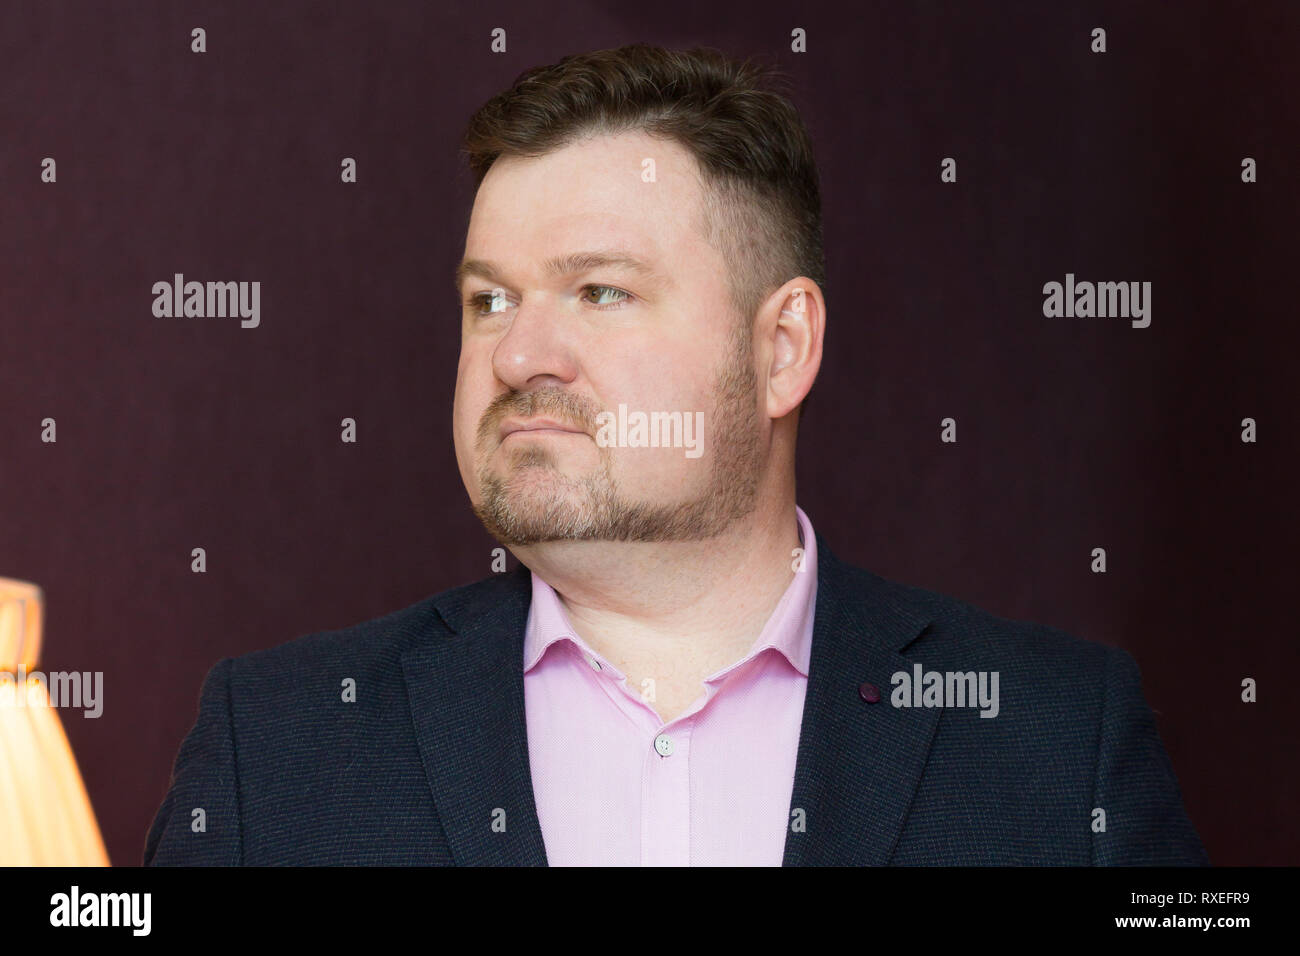 Male 45 years old with obesity on a dark background. - Stock Image